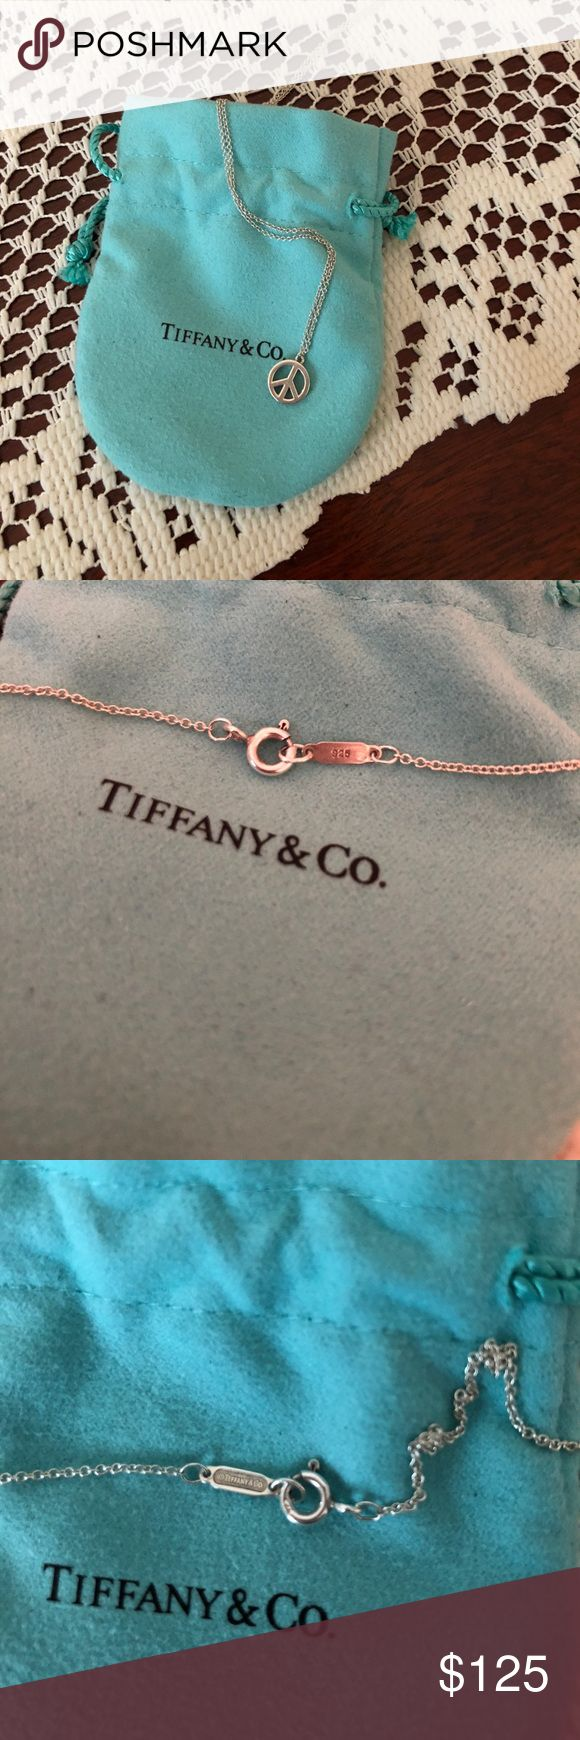 """Tiffany & Co. Delicate Peace sign necklace Tiffany & Co. Peace sign necklace. Gently used but like new with little wear or scratches. 16"""" chain,  .925 Sterling silver. Comes with Tiffany & Co. shammy pouch. Tiffany & Co. Jewelry Necklaces"""